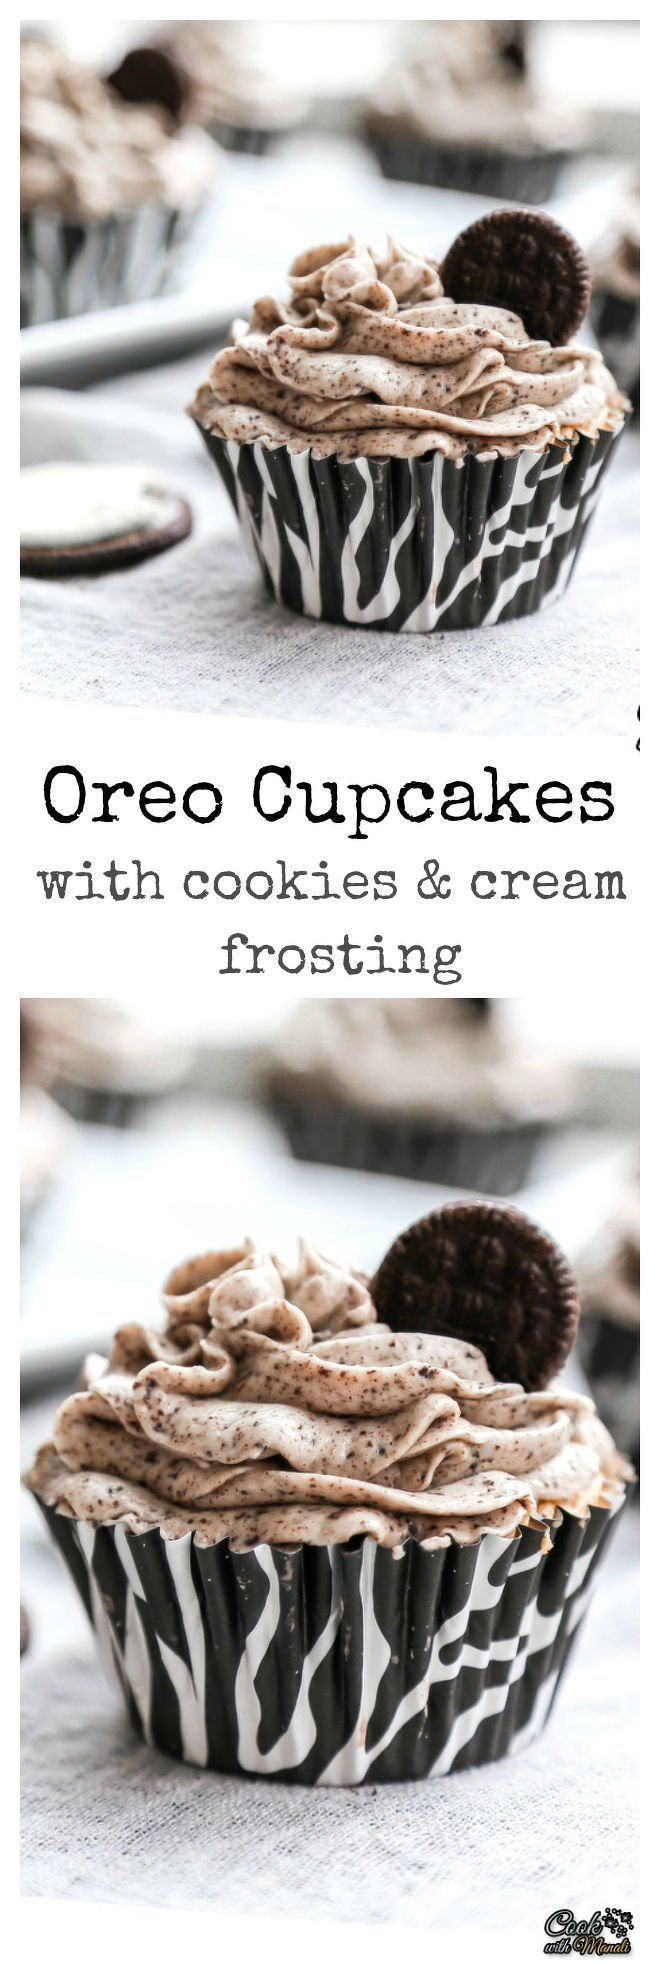 Oreo Cupcakes with Cookies & Cream Frosting Collage-nocwm